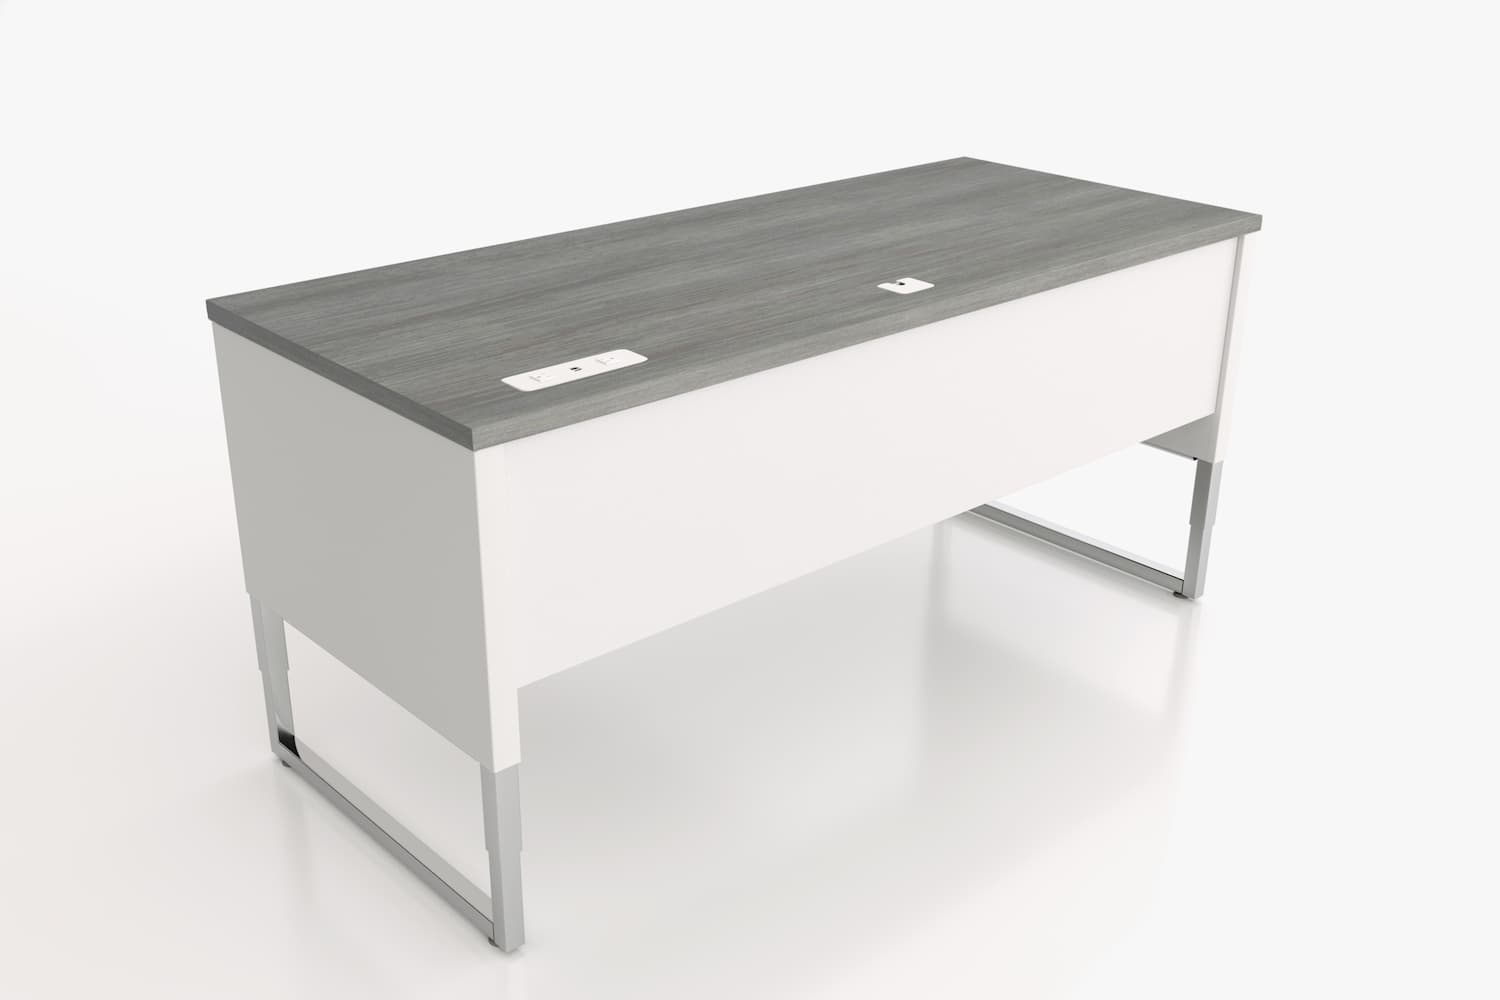 Advent-Desk-ADV-7230-WH-Custom-Top-11-Back